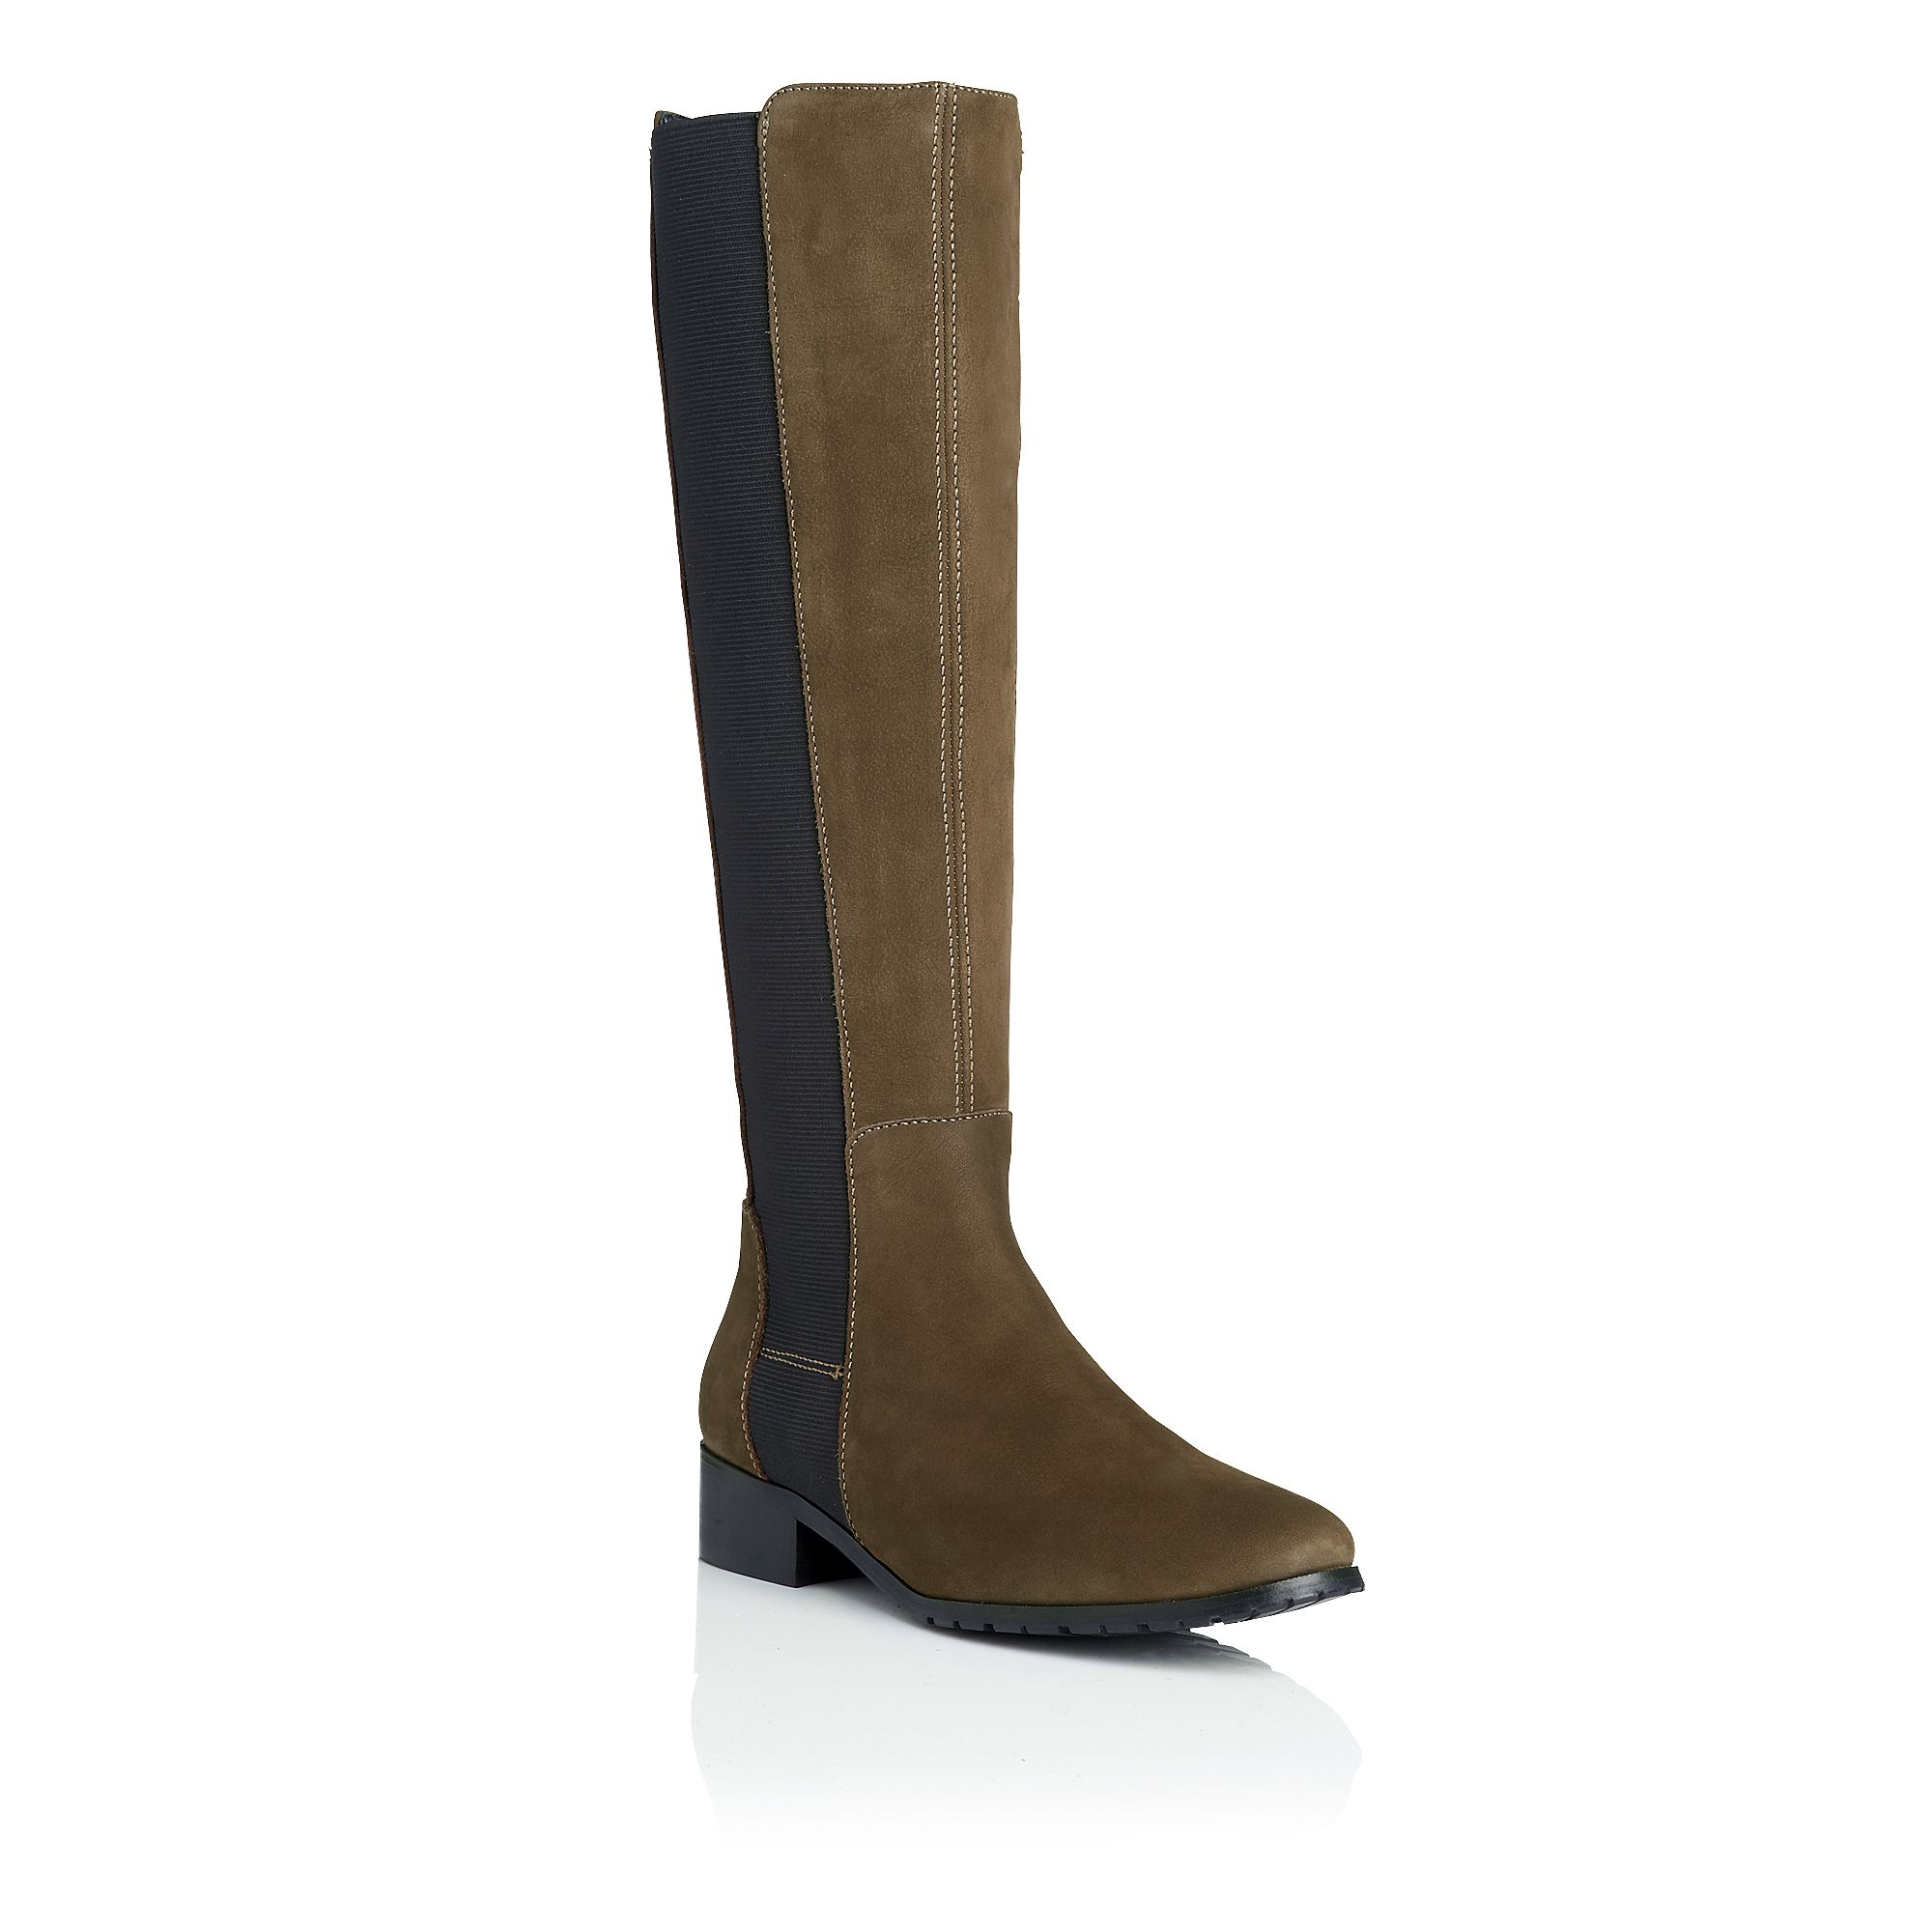 Toni nubuck leather knee high boots